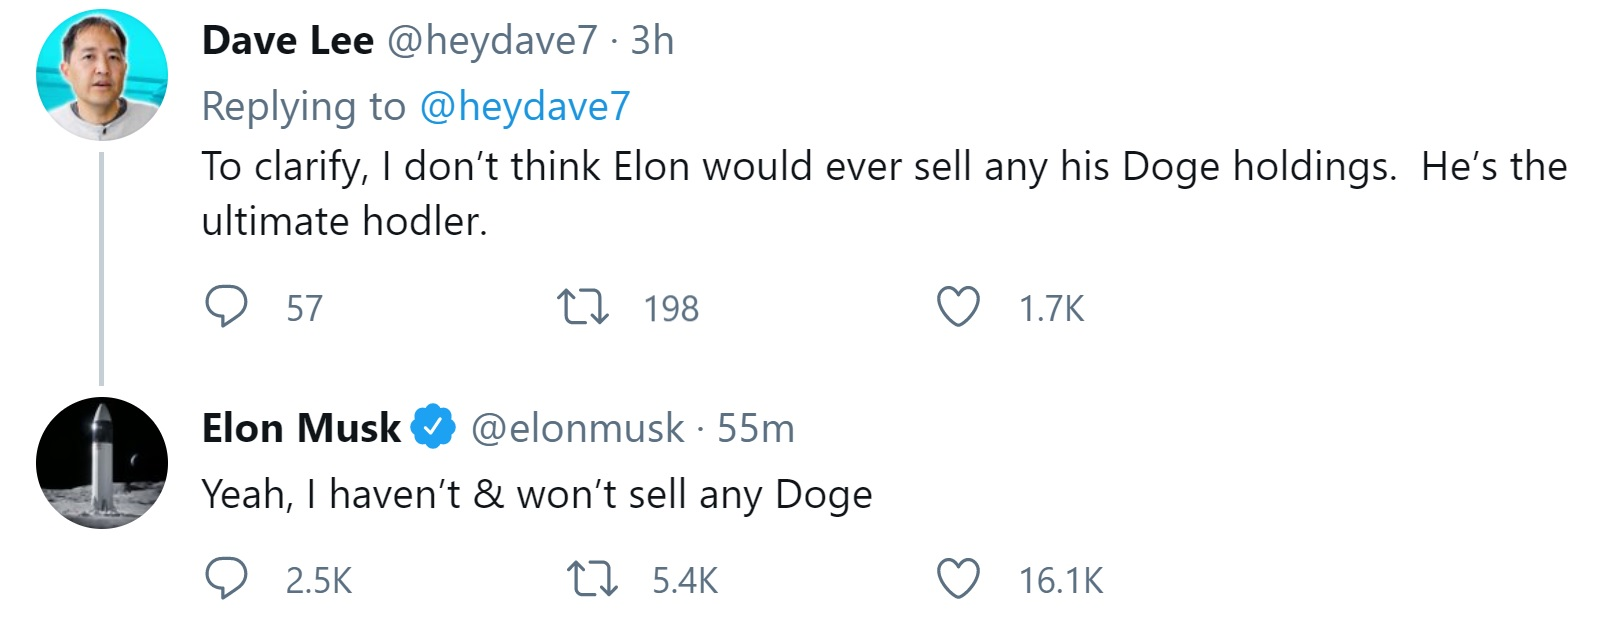 Elon Musk Says He Won't Sell Any Dogecoin, Admits He's the 'Ultimate Hodler'